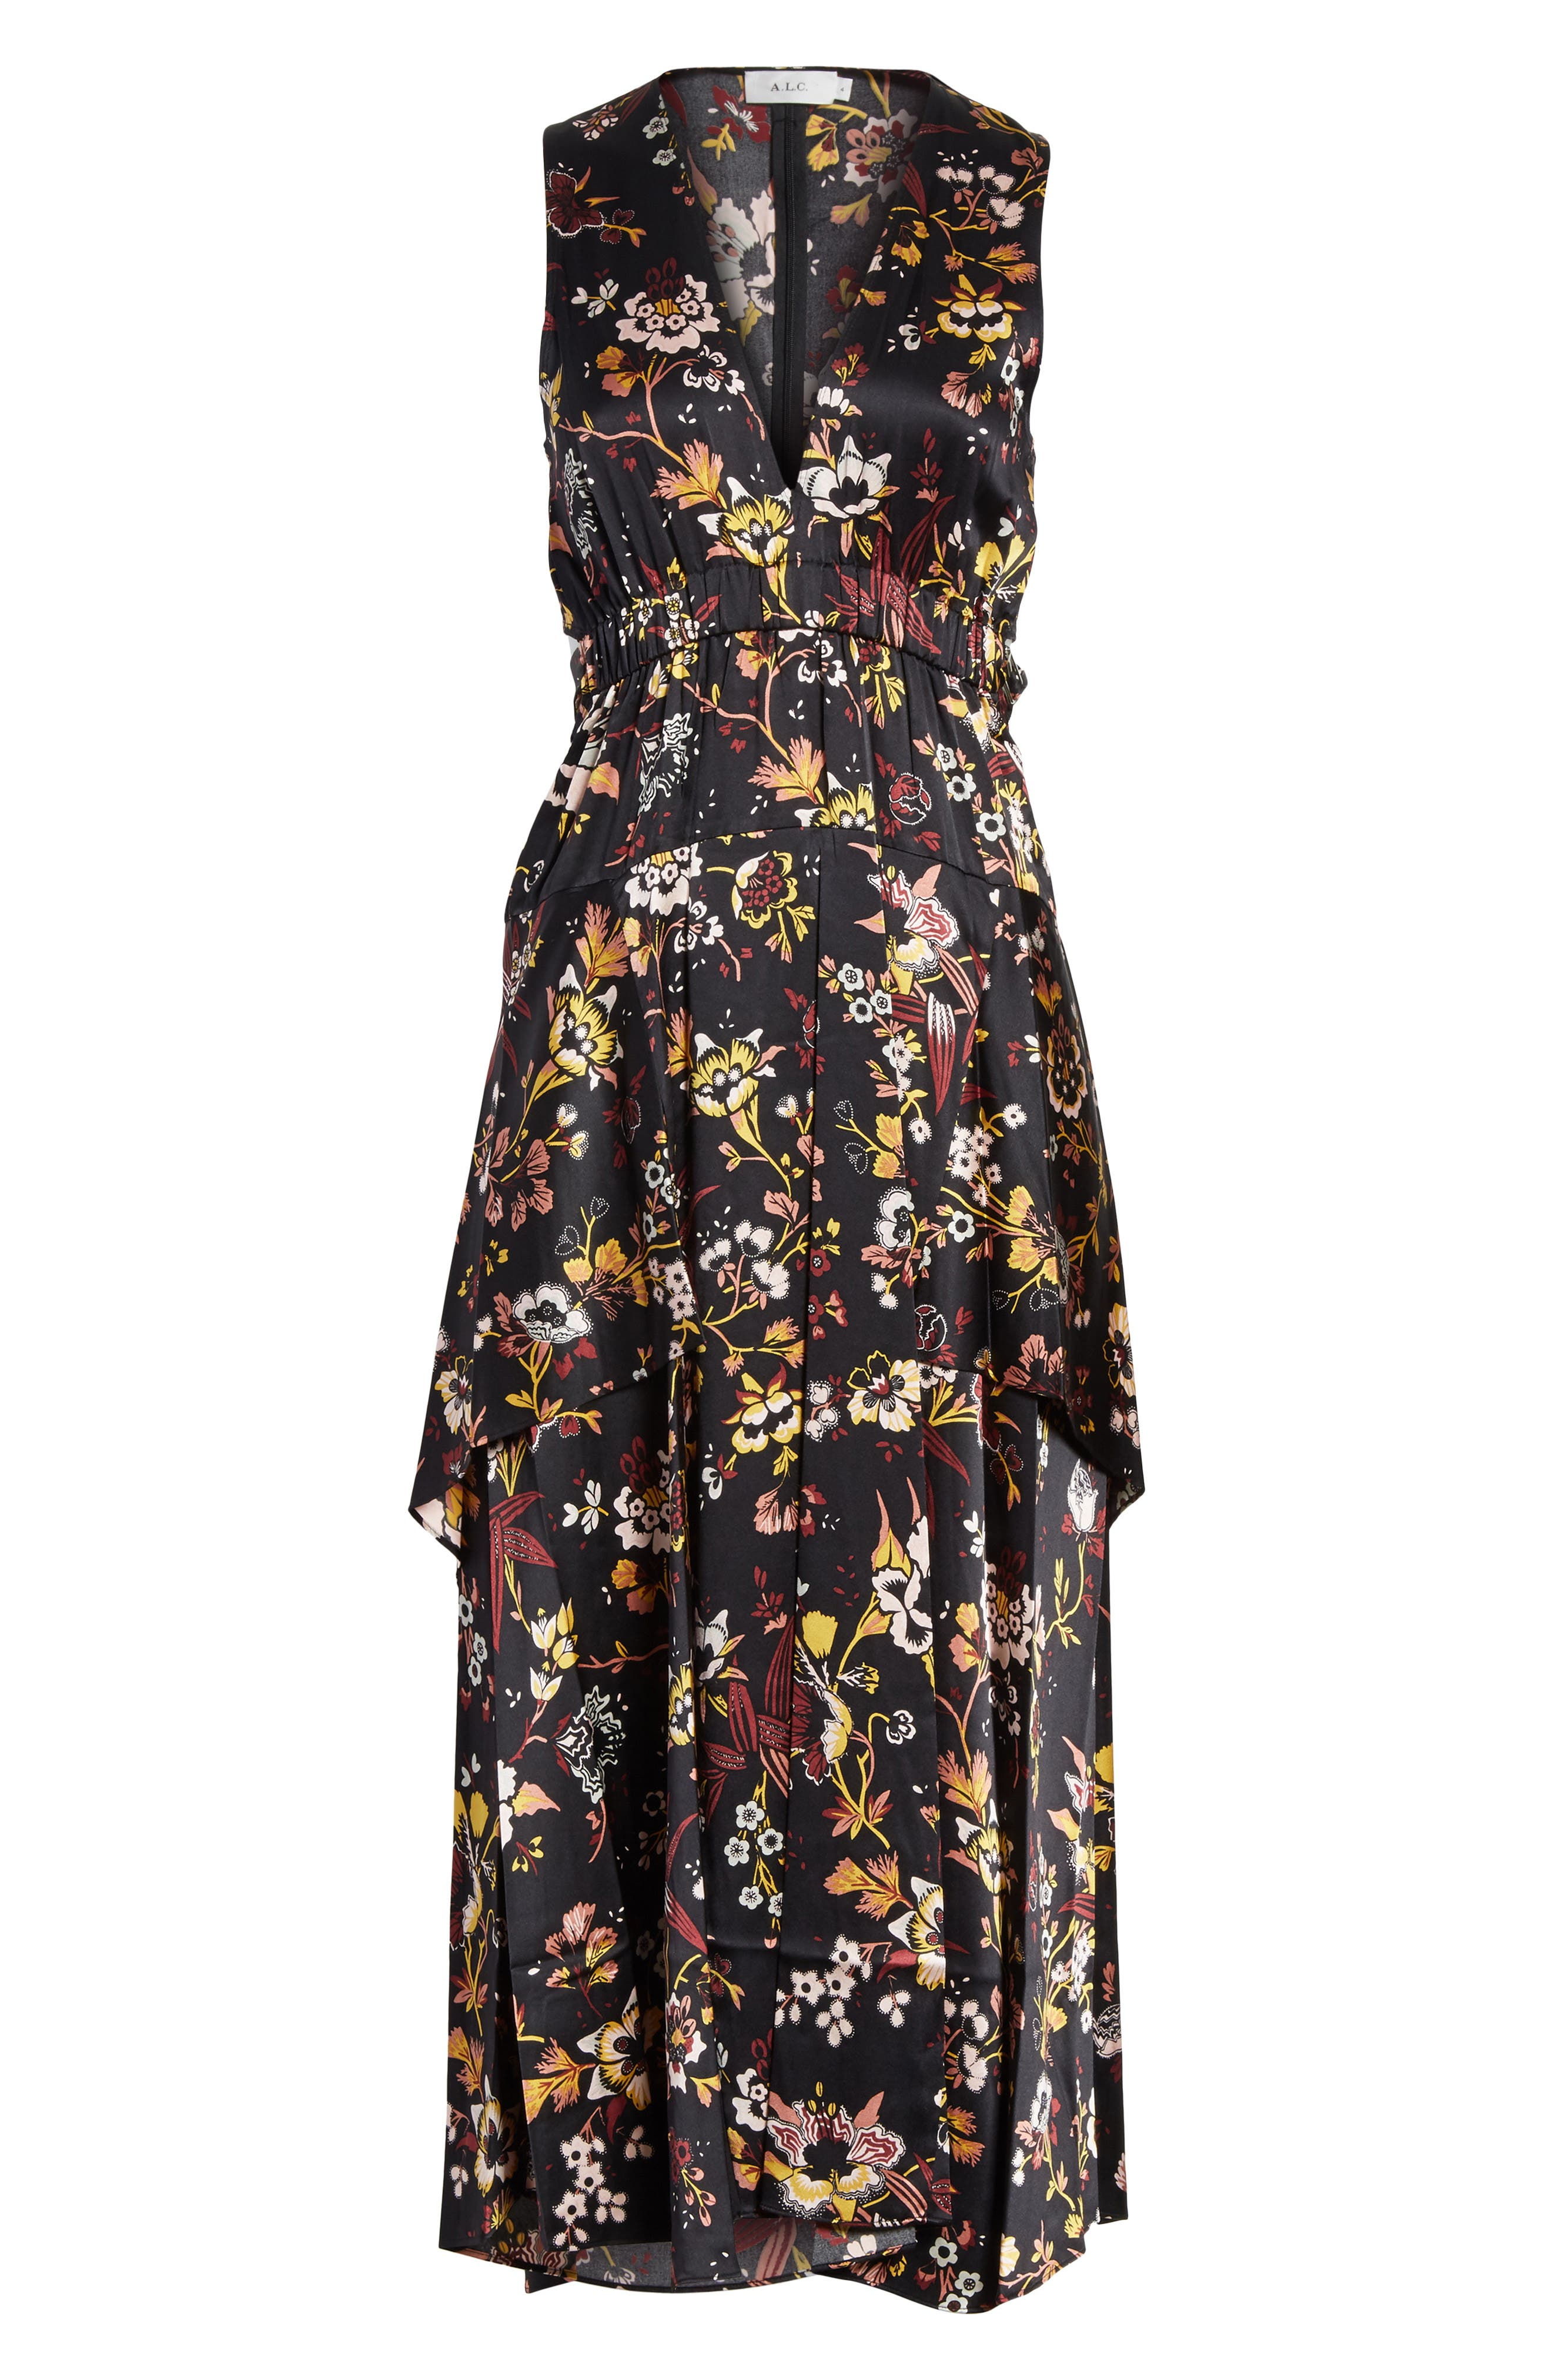 Verbena Floral Print Stretch Silk Dress,                             Alternate thumbnail 6, color,                             Black/ Grey/ Mustard